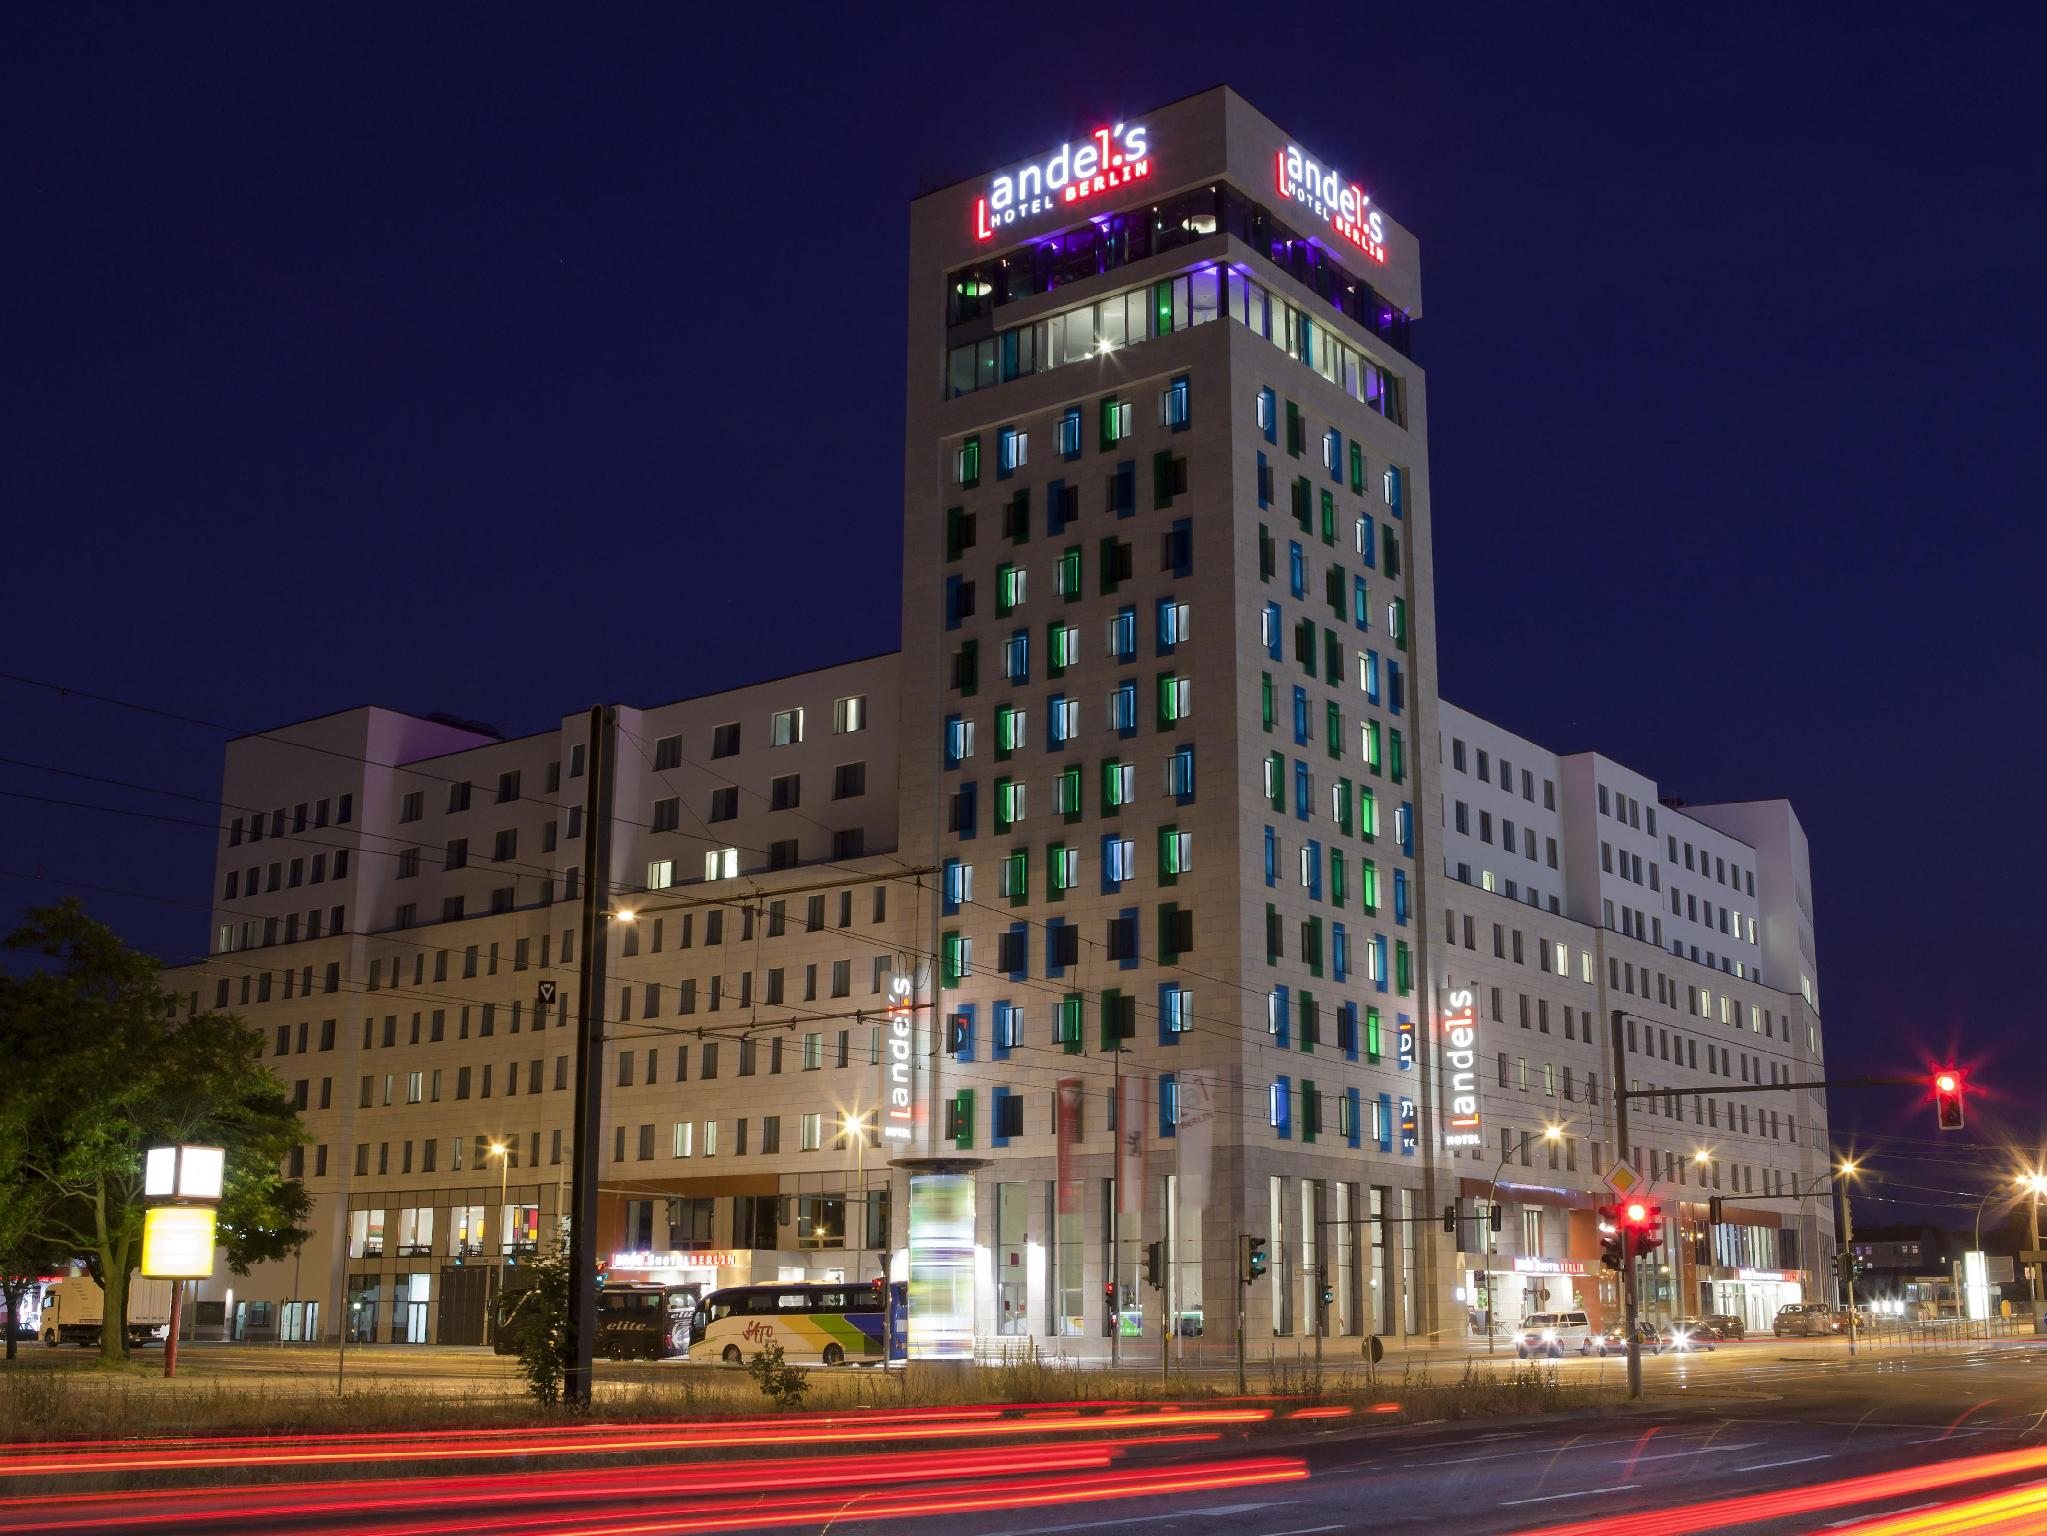 andel's Hotel Berlin, managed by Vienna International Hotels and Resorts Berlin - Widok